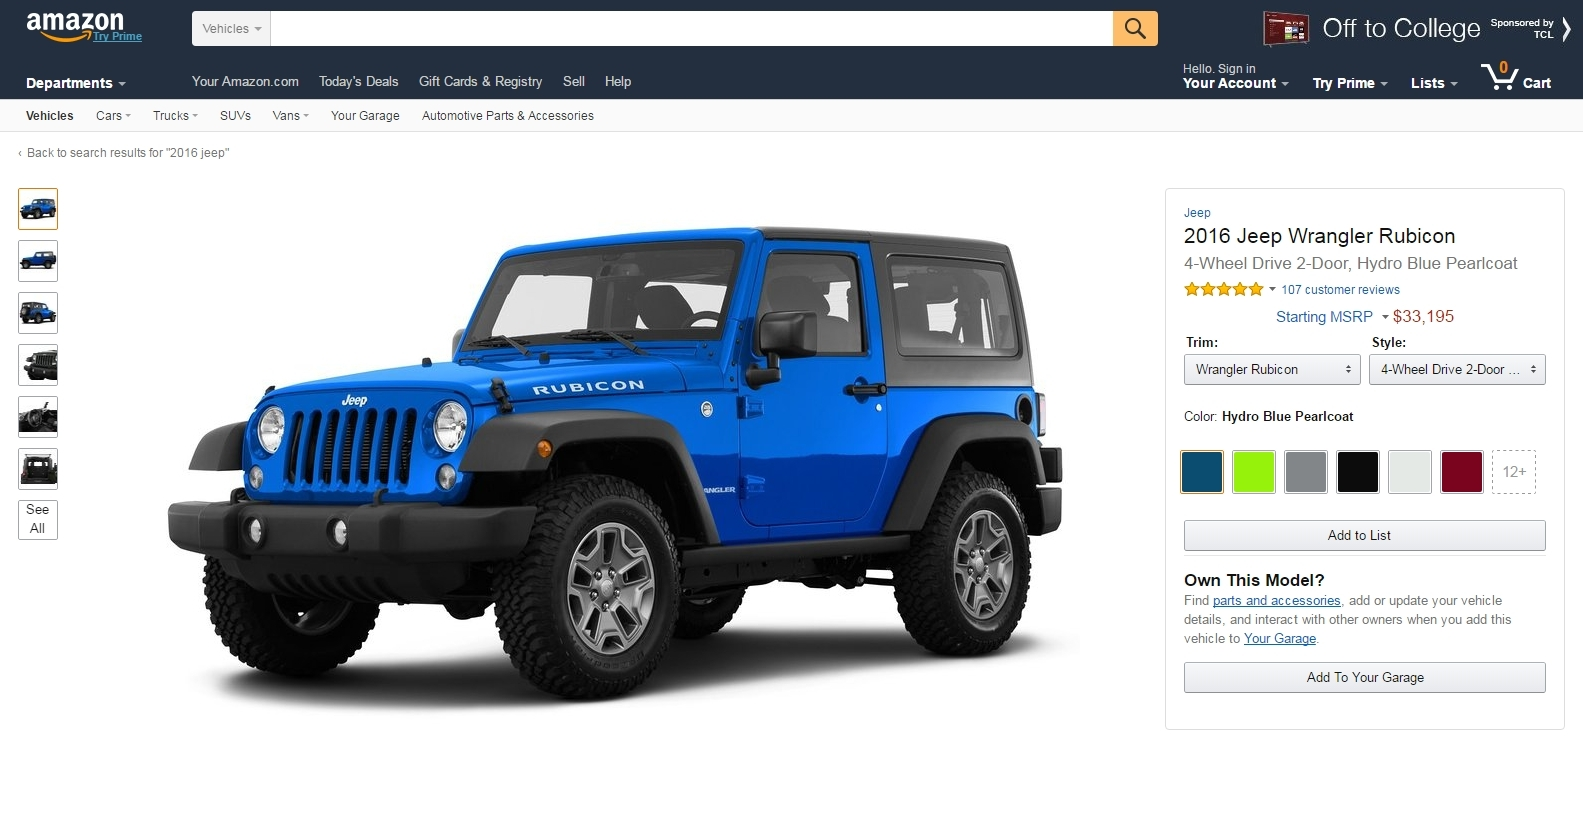 Amazon starts car research and review site